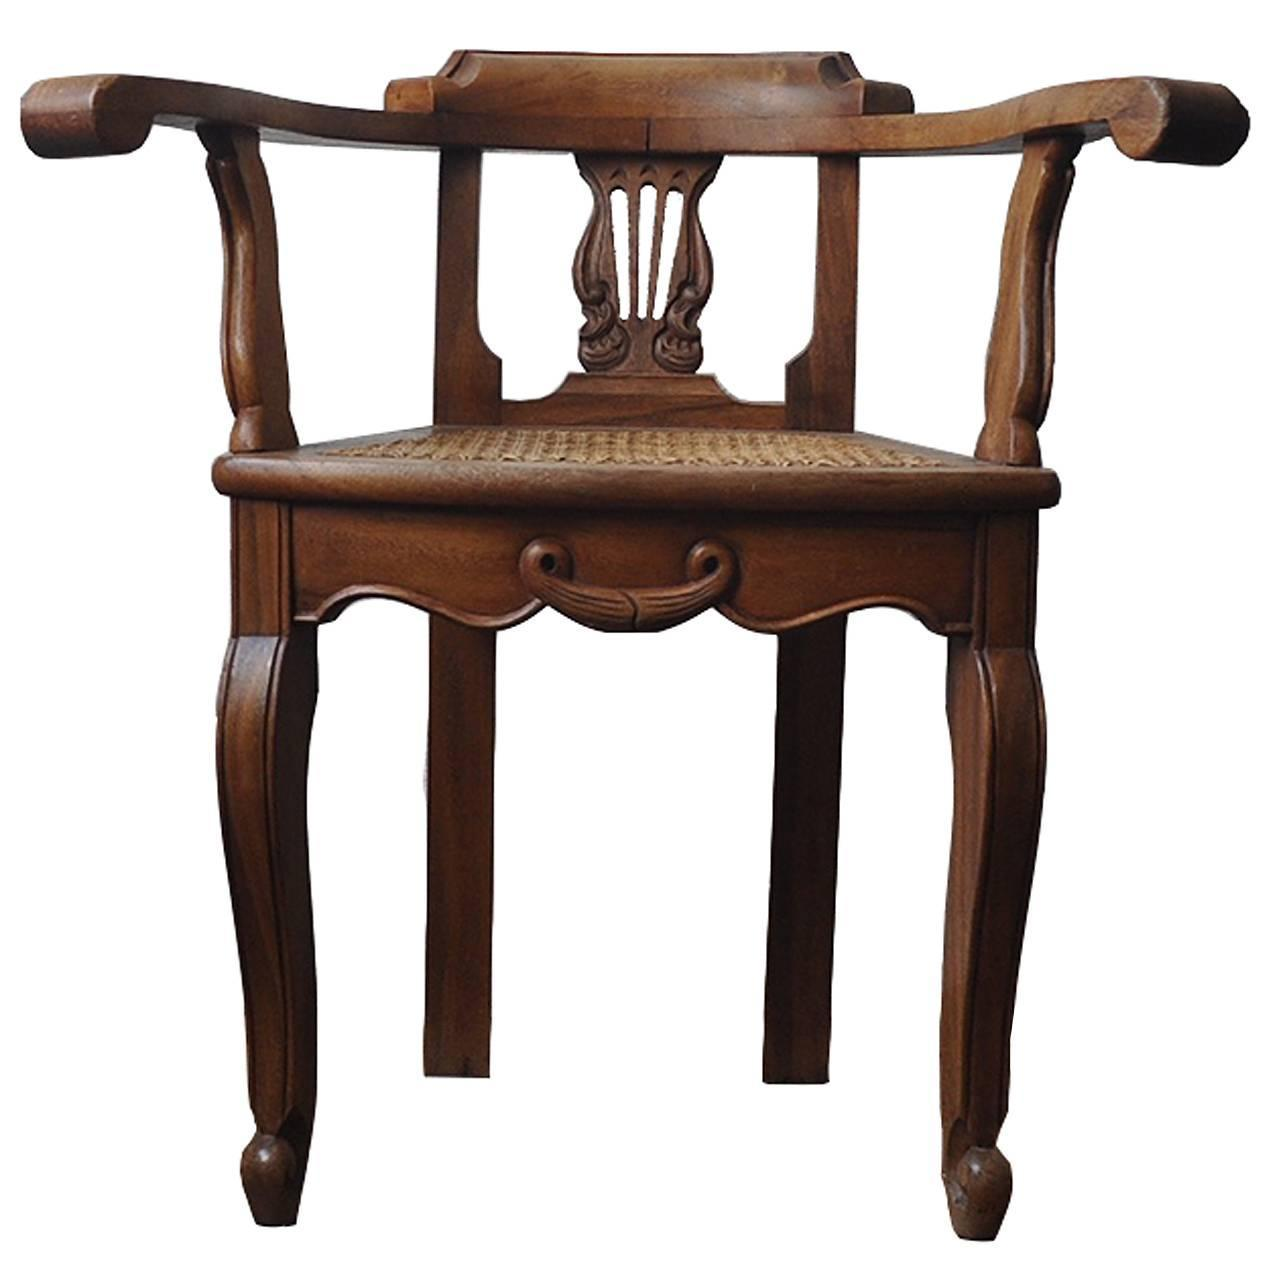 Spanish Colonial Chairs - 23 For Sale at 1stdibs